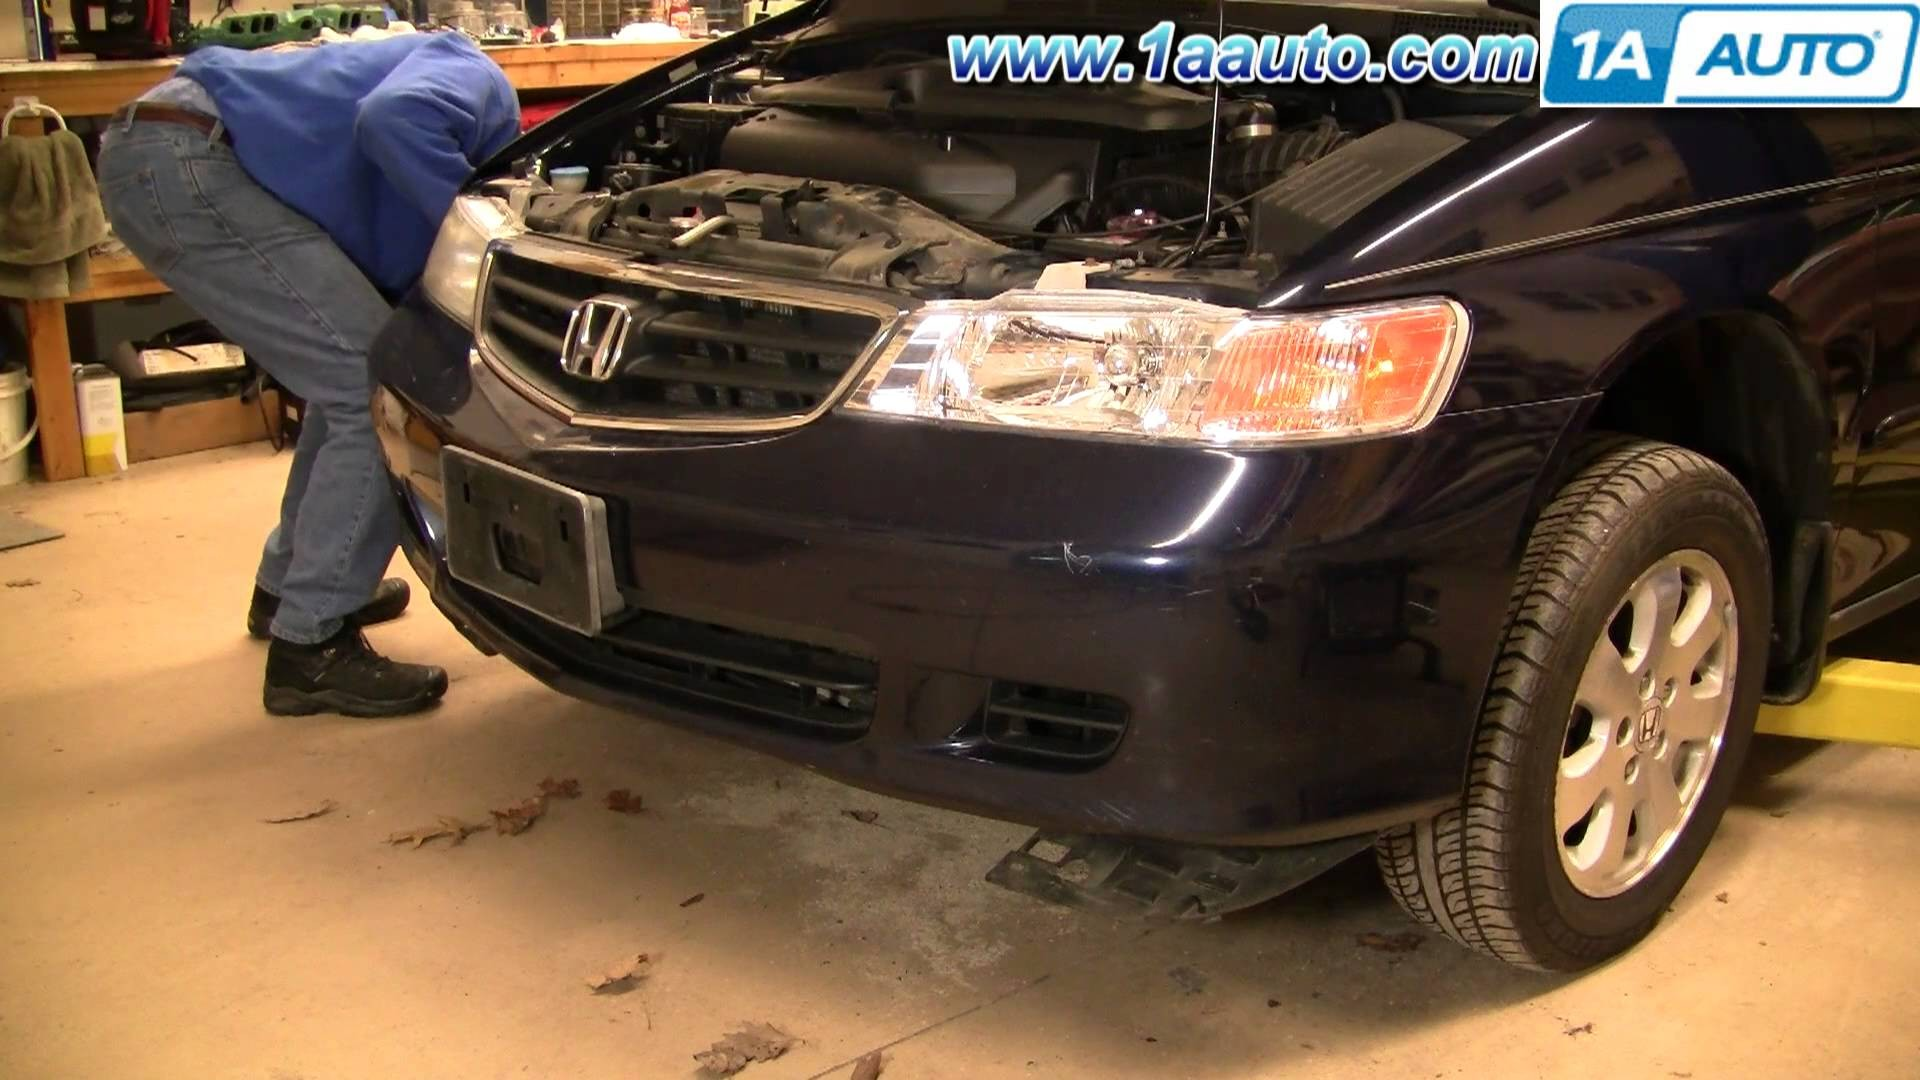 How To Install Remove Replace Front Bumper Cover Honda Odyssey 99 04 1AAuto